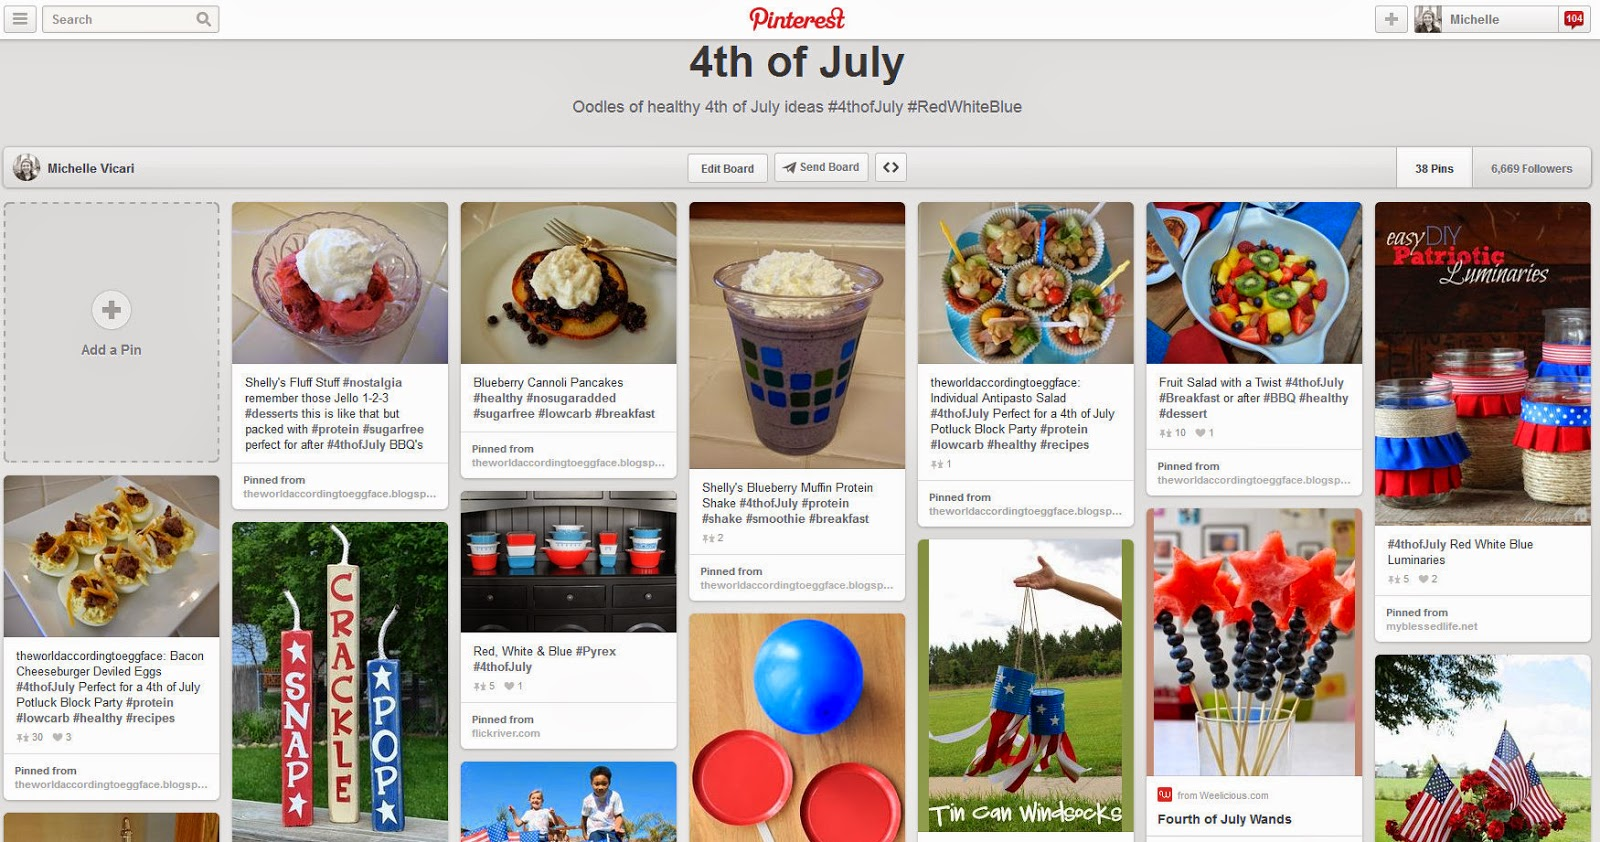 http://www.pinterest.com/eggface/4th-of-july/